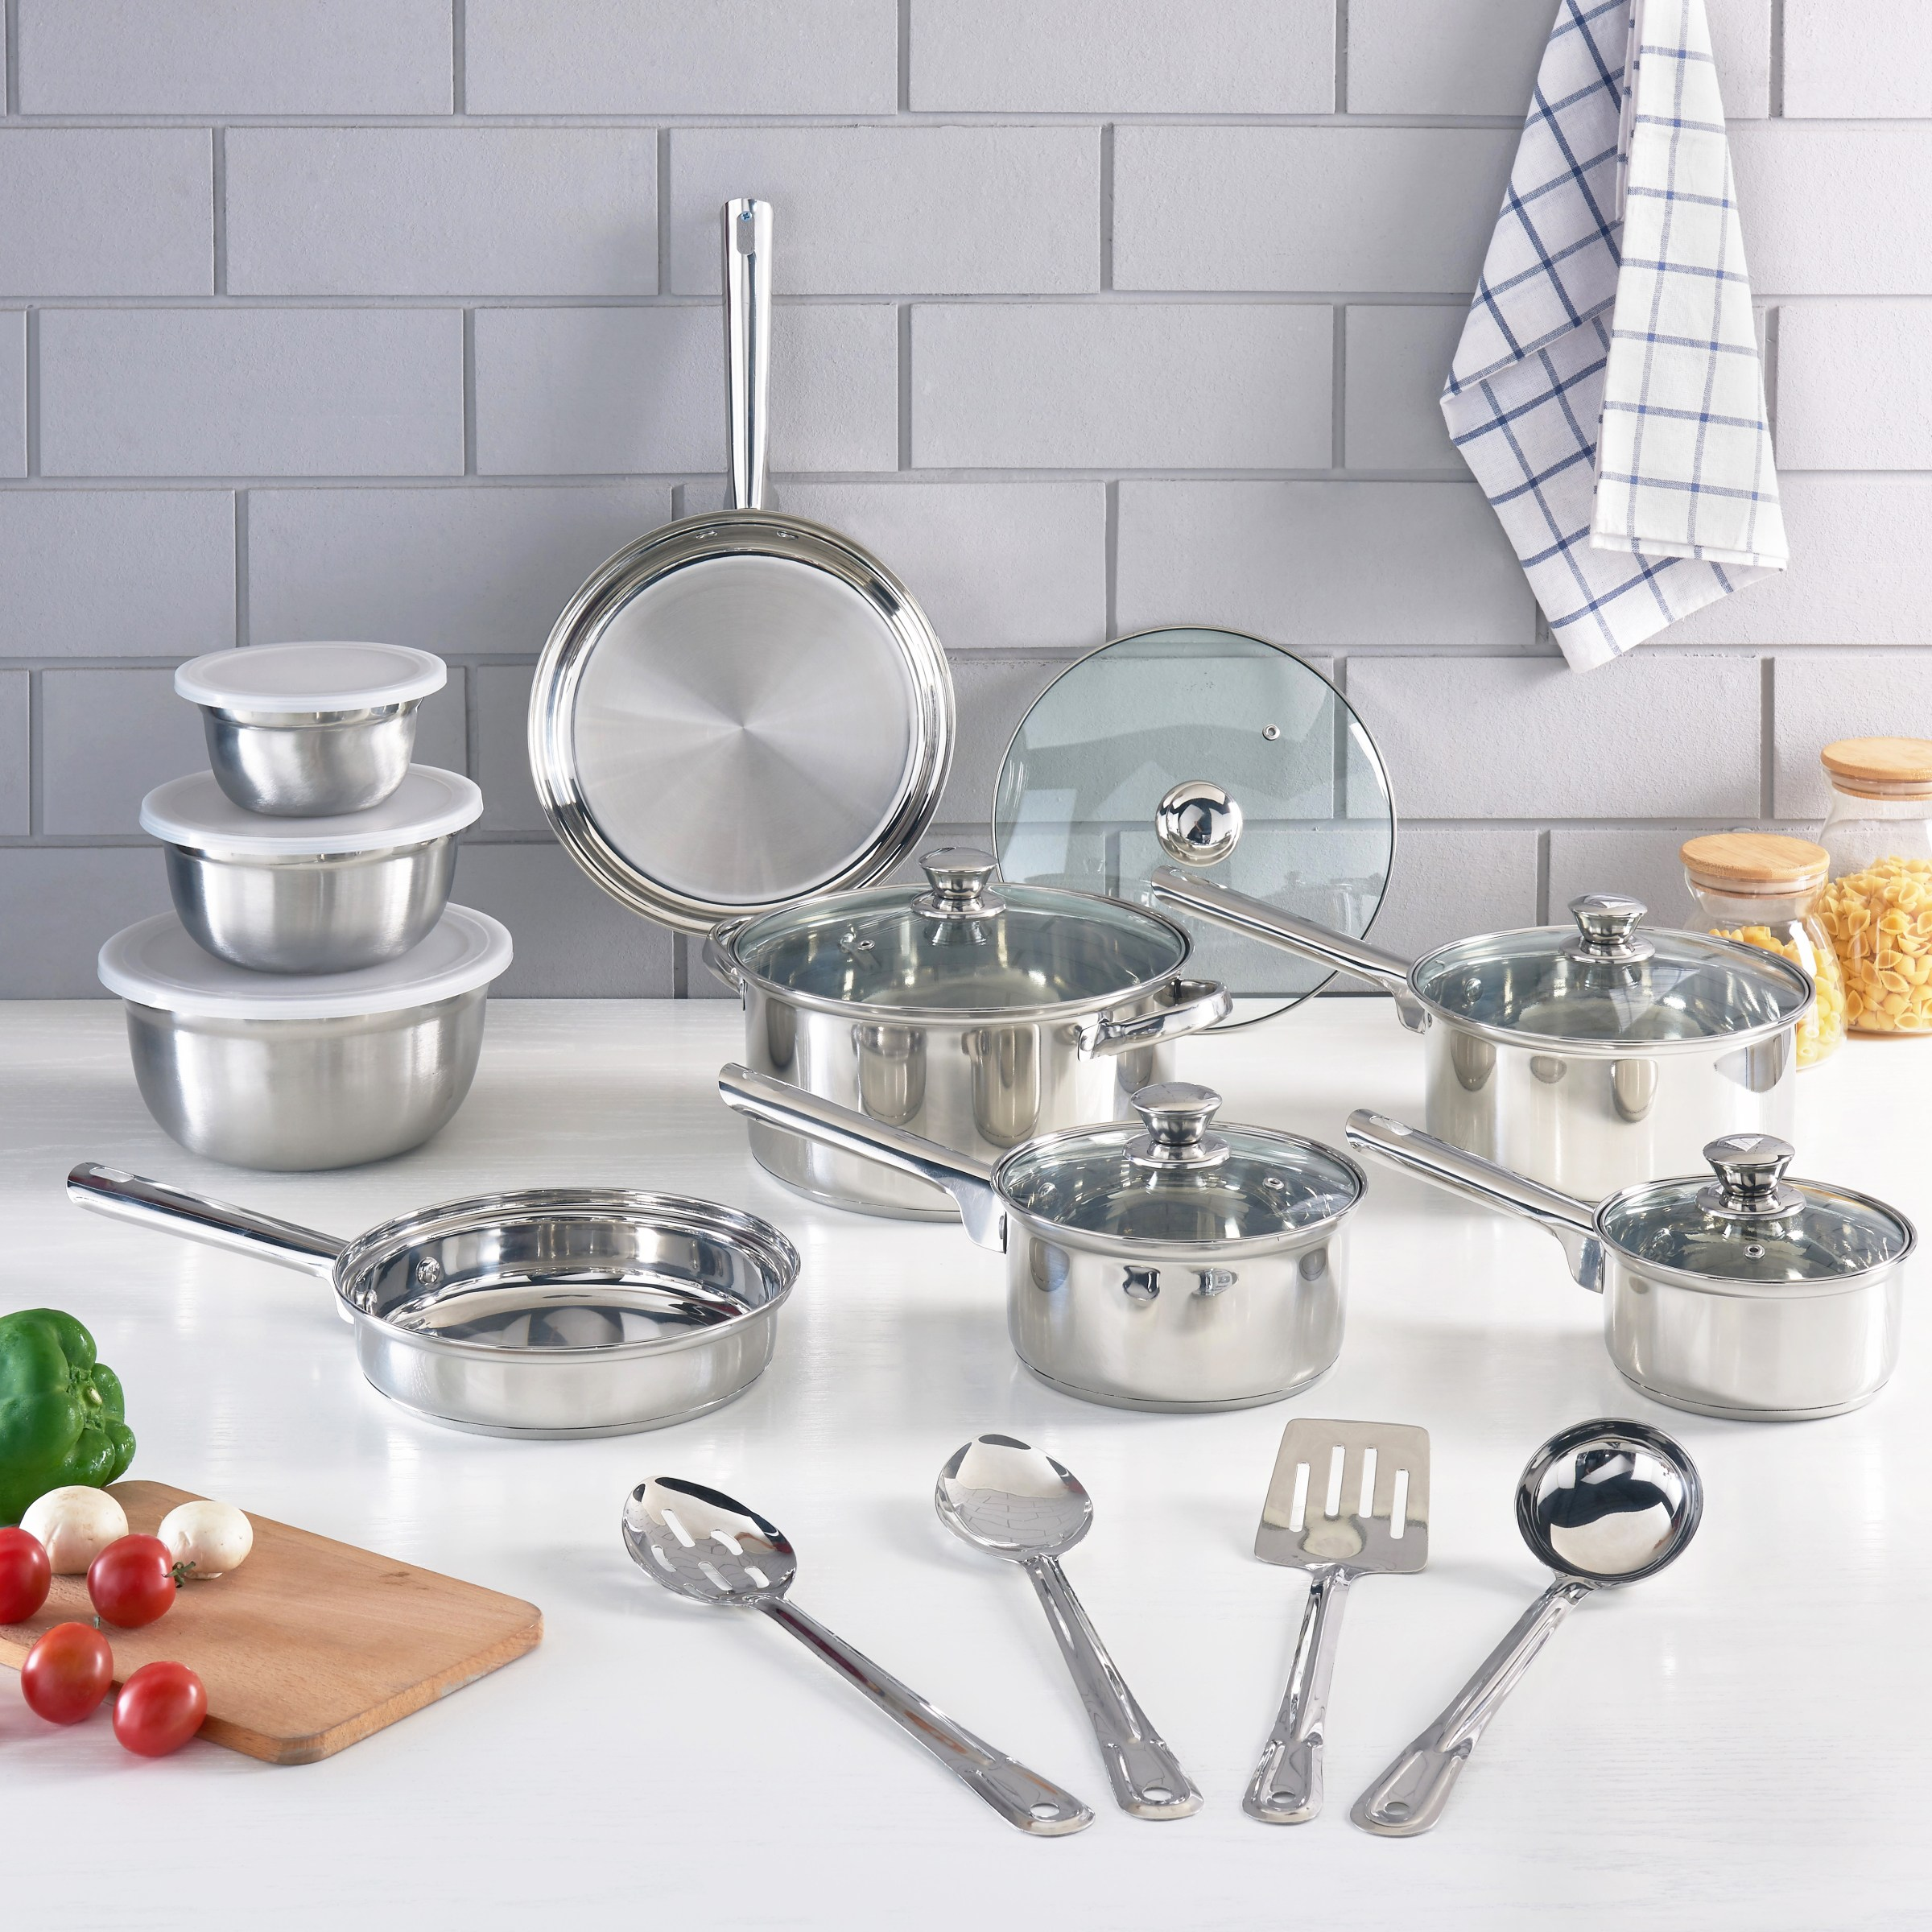 Mainstays Stainless Steel Cookware Set, 10-18 Pieces